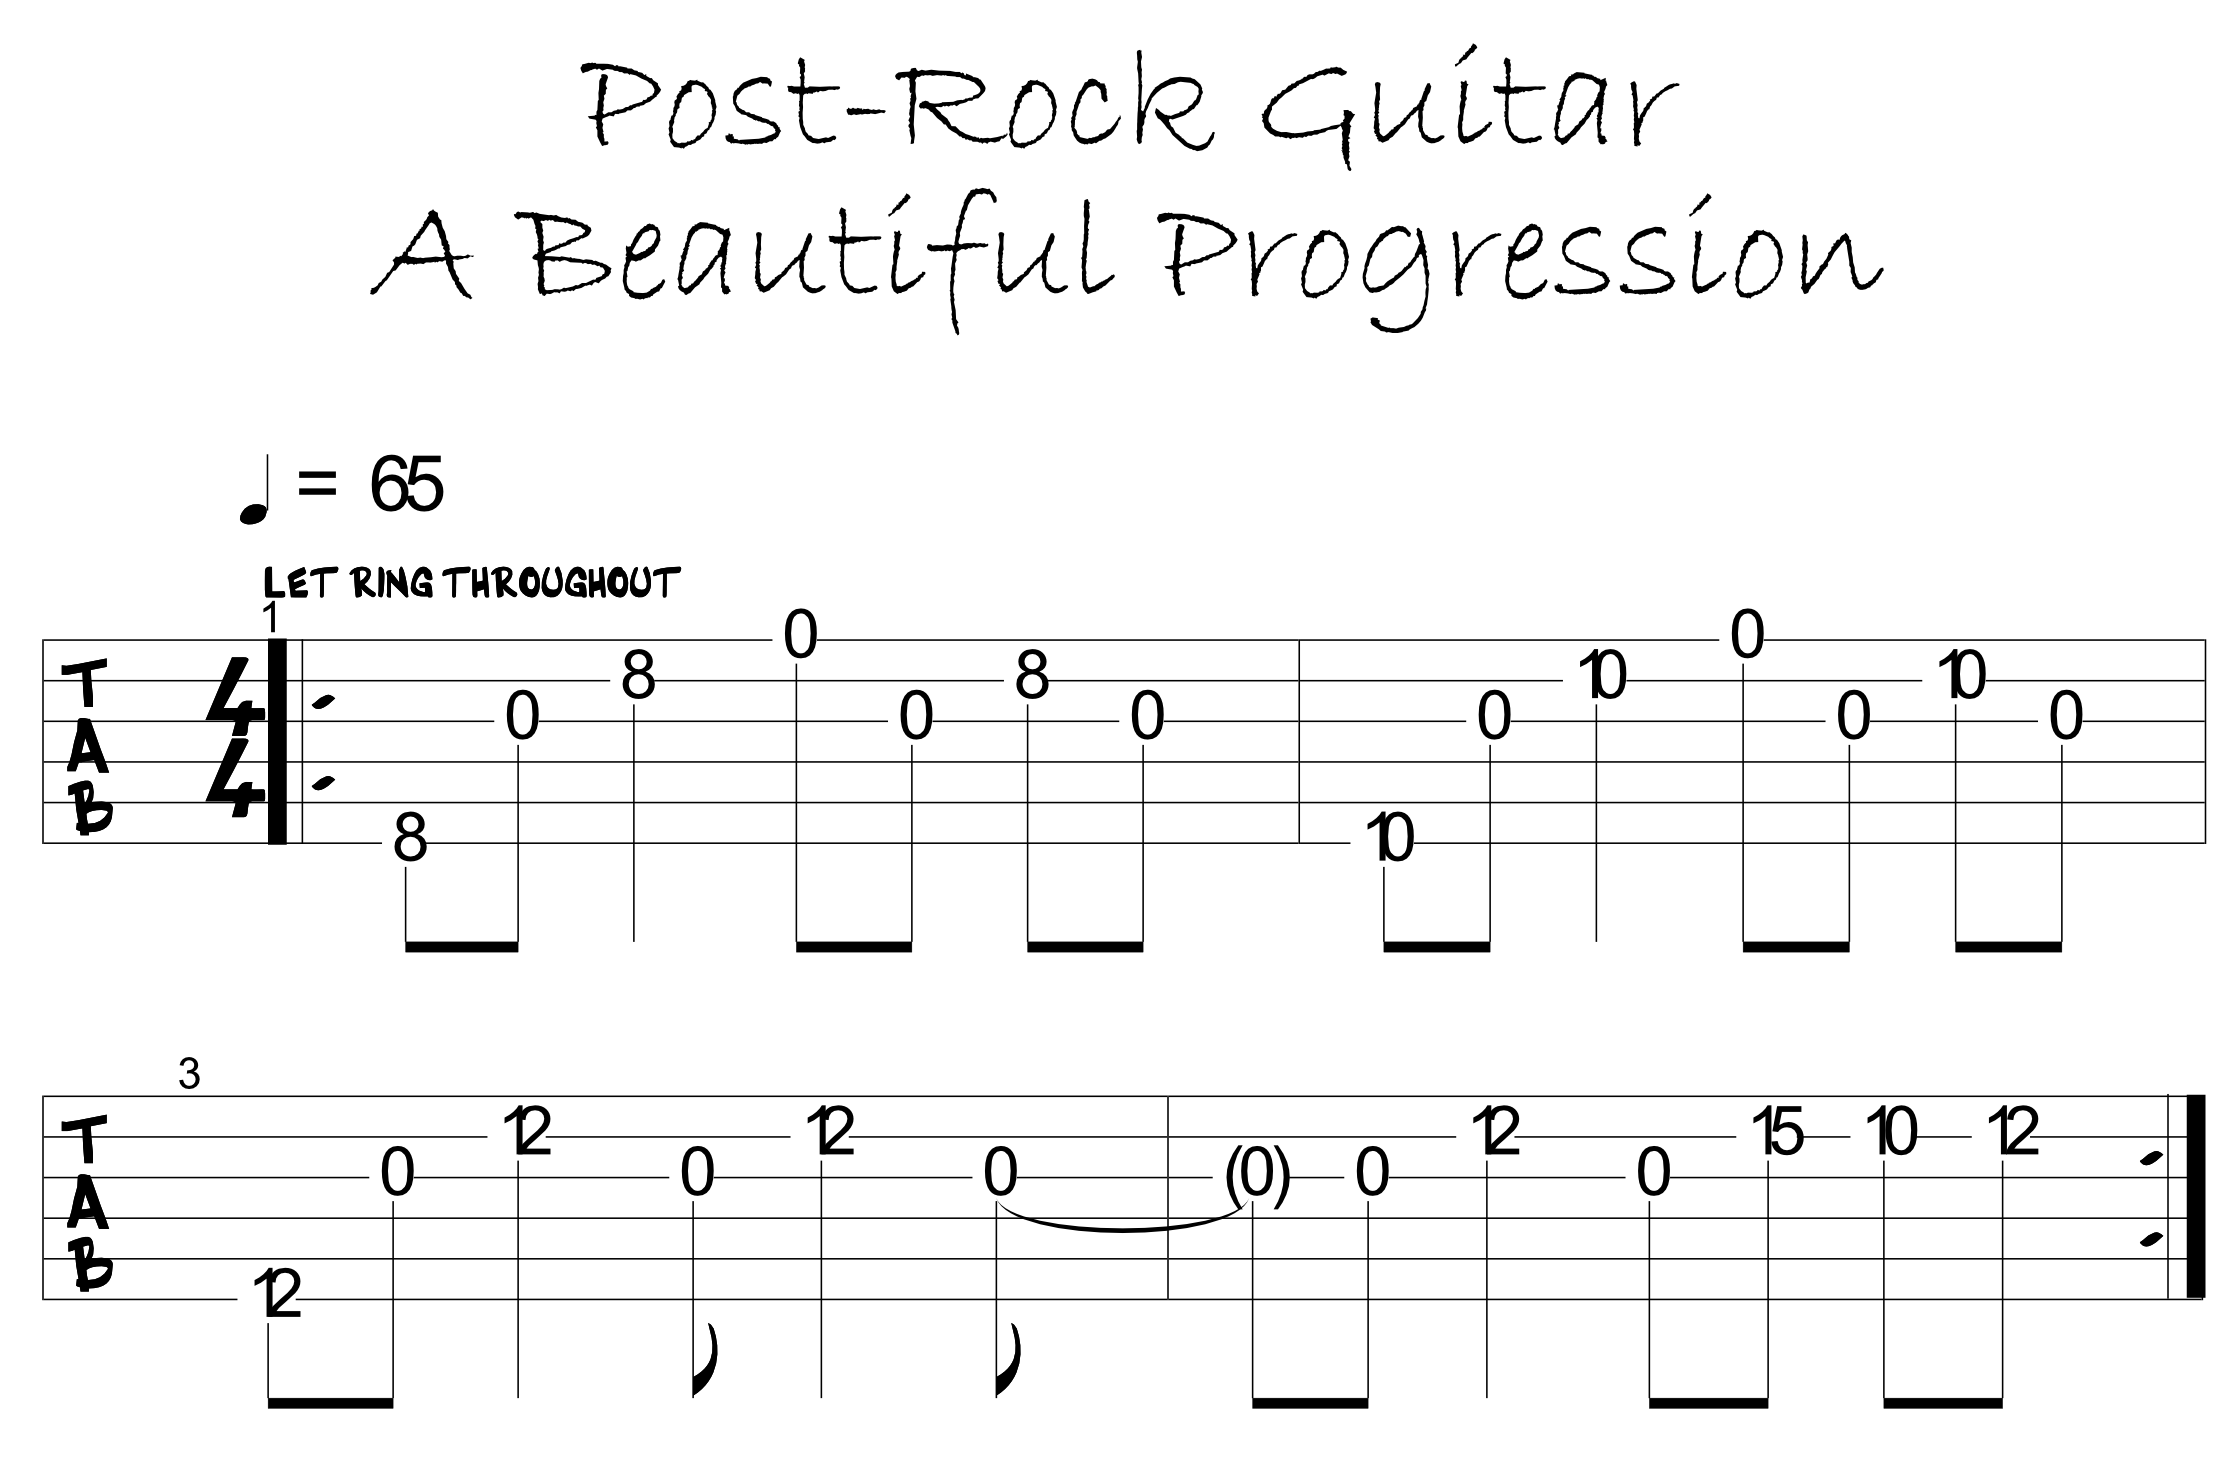 The beauty of Post-Rock guitar